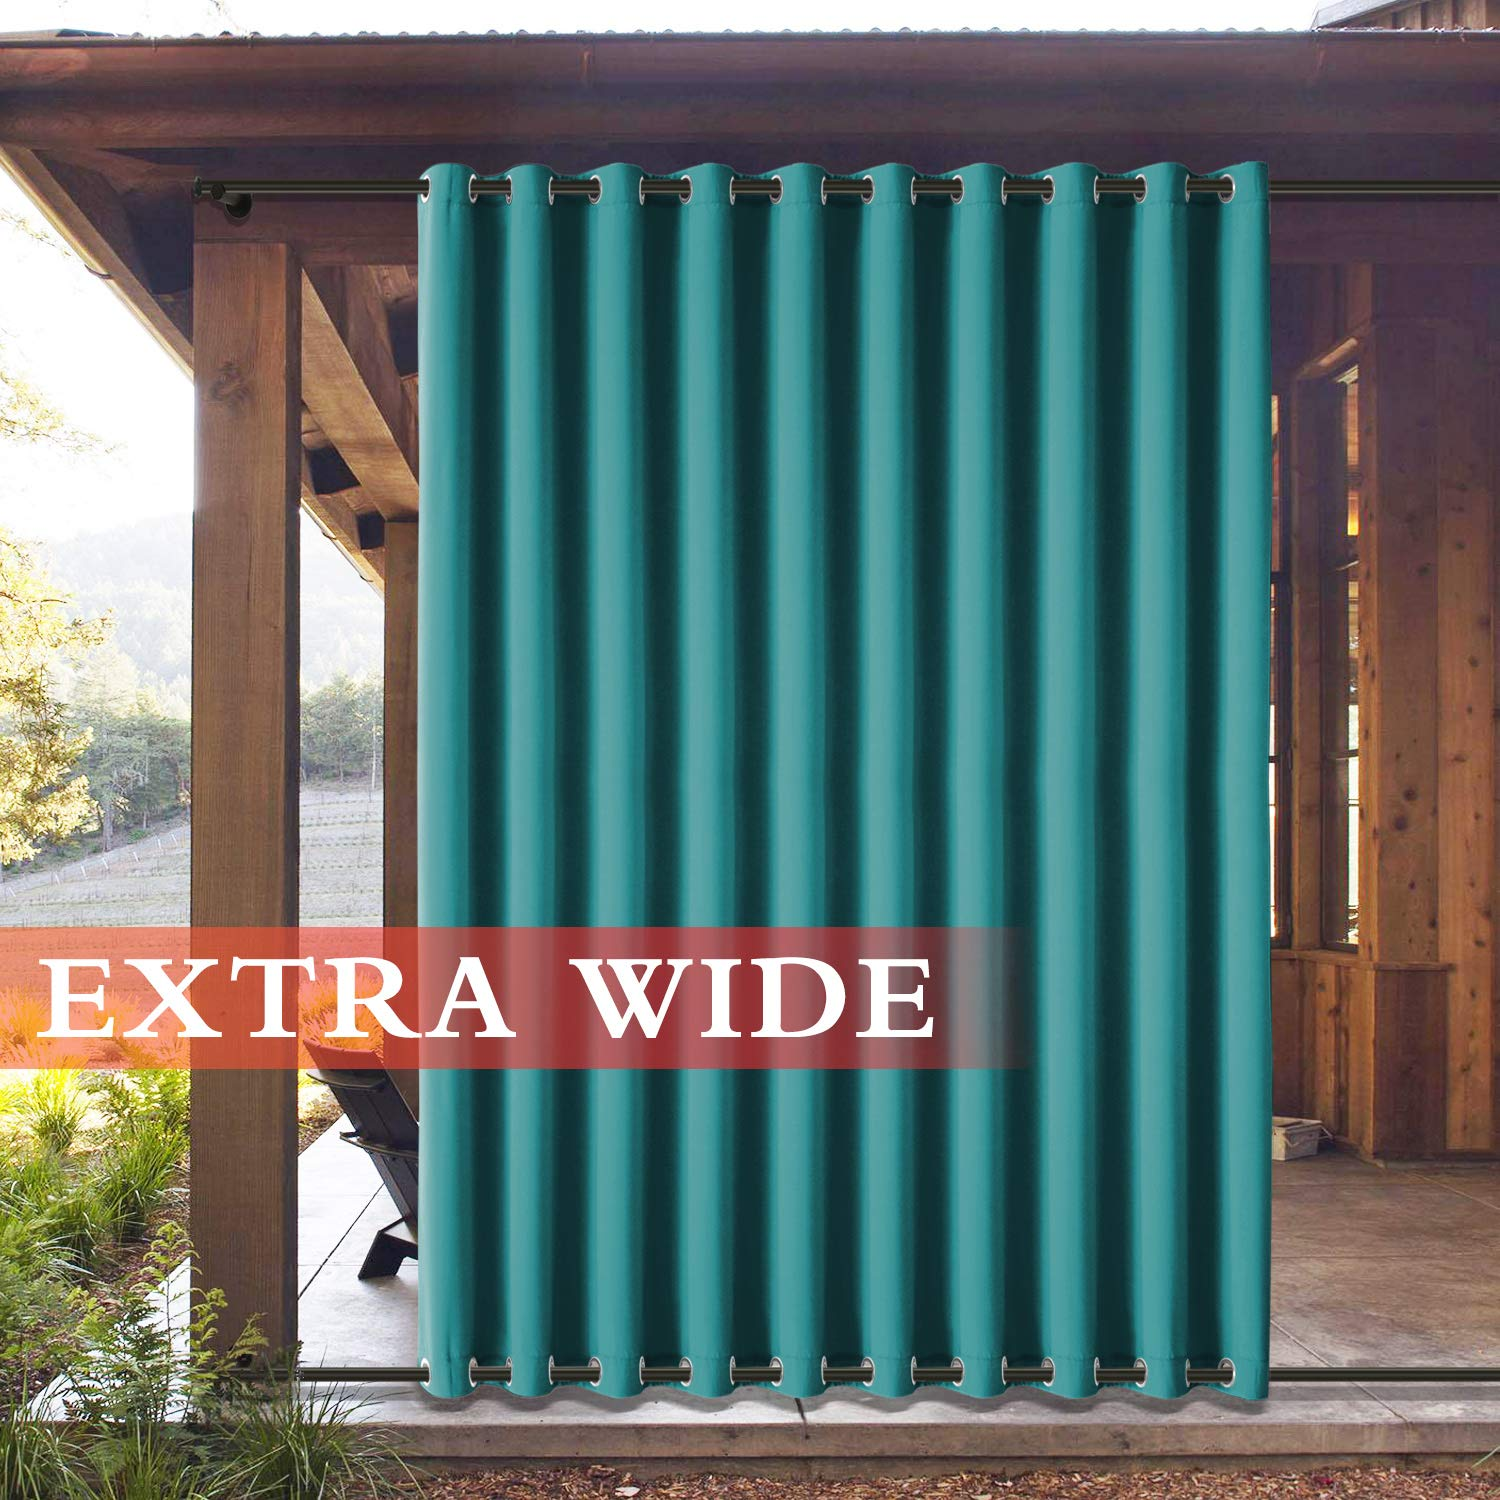 Frelement Outside Drapes Panels for Patio Cabana Indoor/Outdoor Decoration Water Repellent Heat Insulated Outdoor Curtains Rustproof Grommet Top and Bottom, Turquoise 100W x 102L (1 Panel)